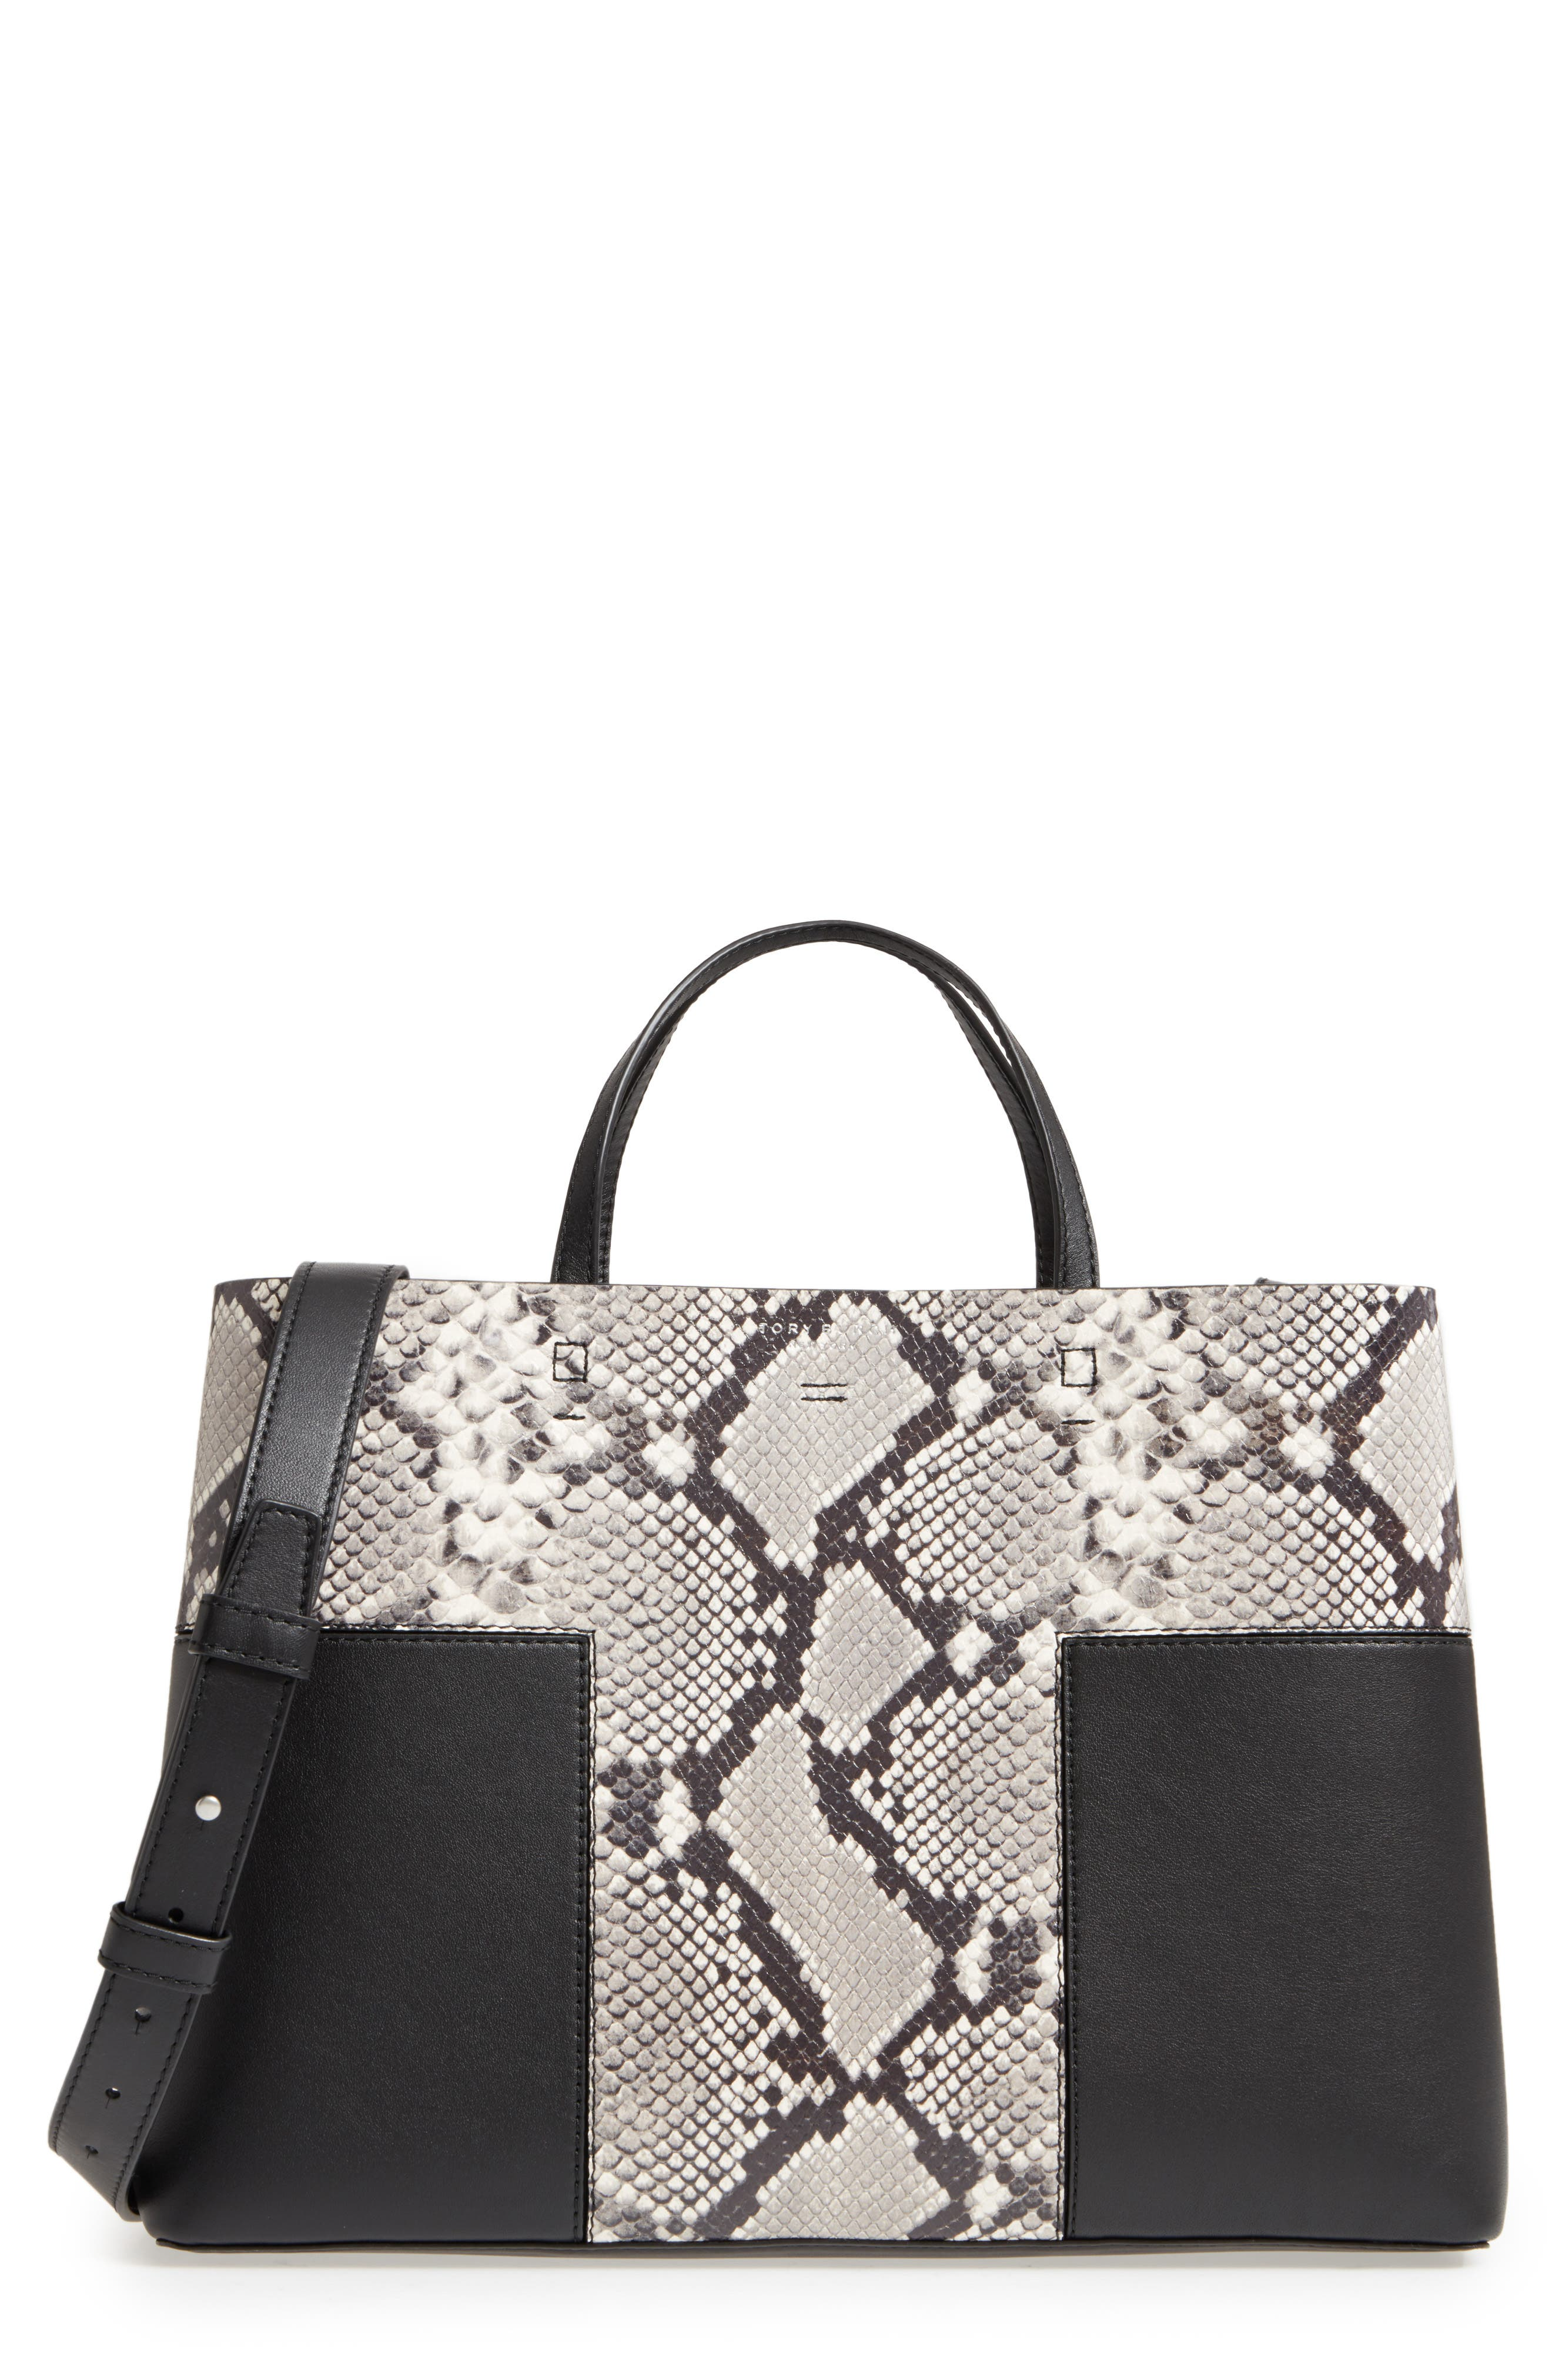 Block-T Snake Embossed Leather Tote,                             Main thumbnail 1, color,                             001